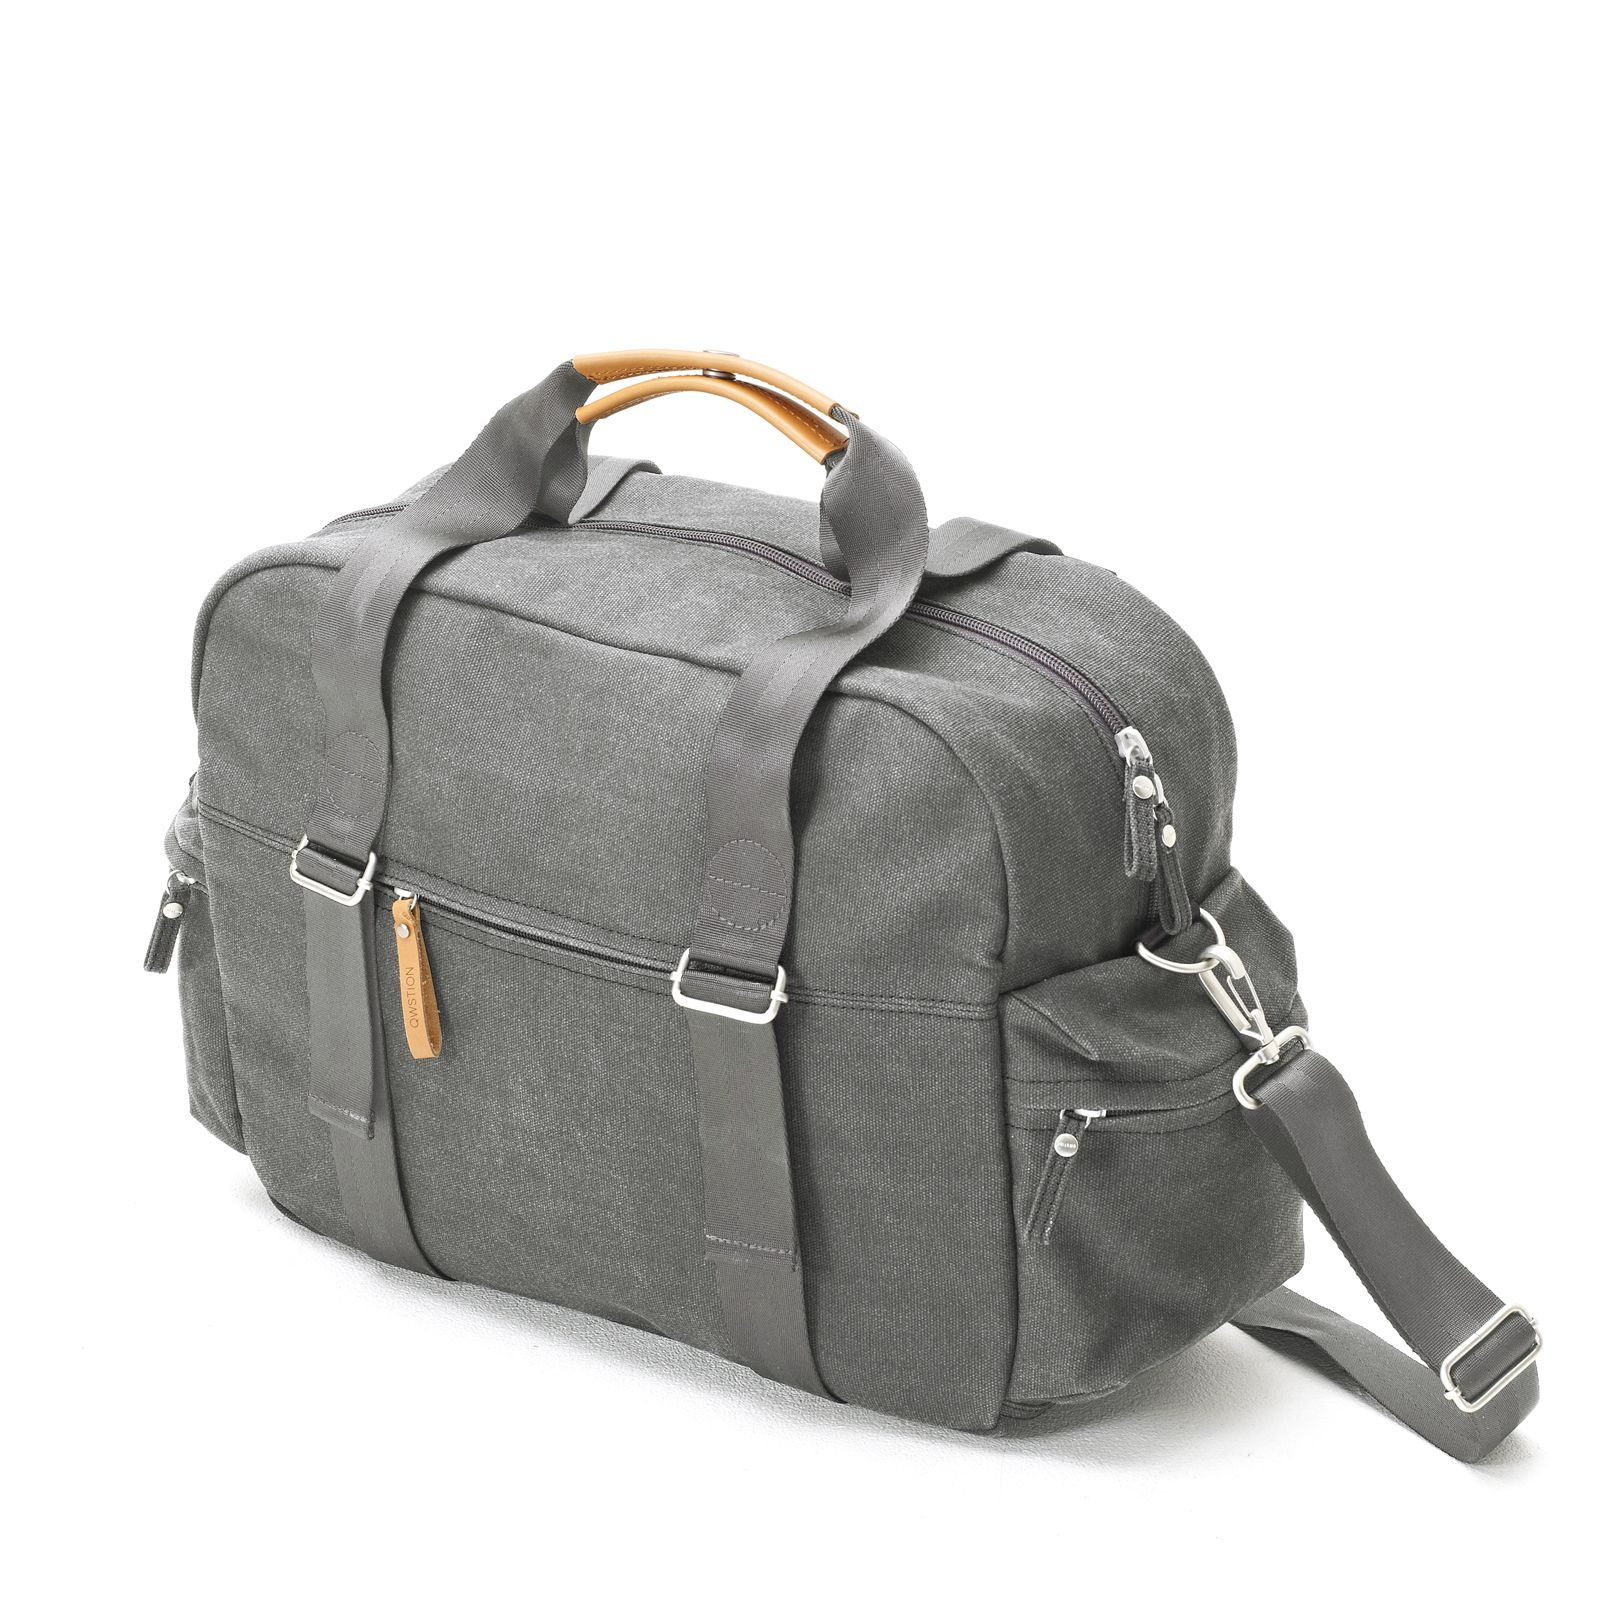 Overnighter - Washed Grey